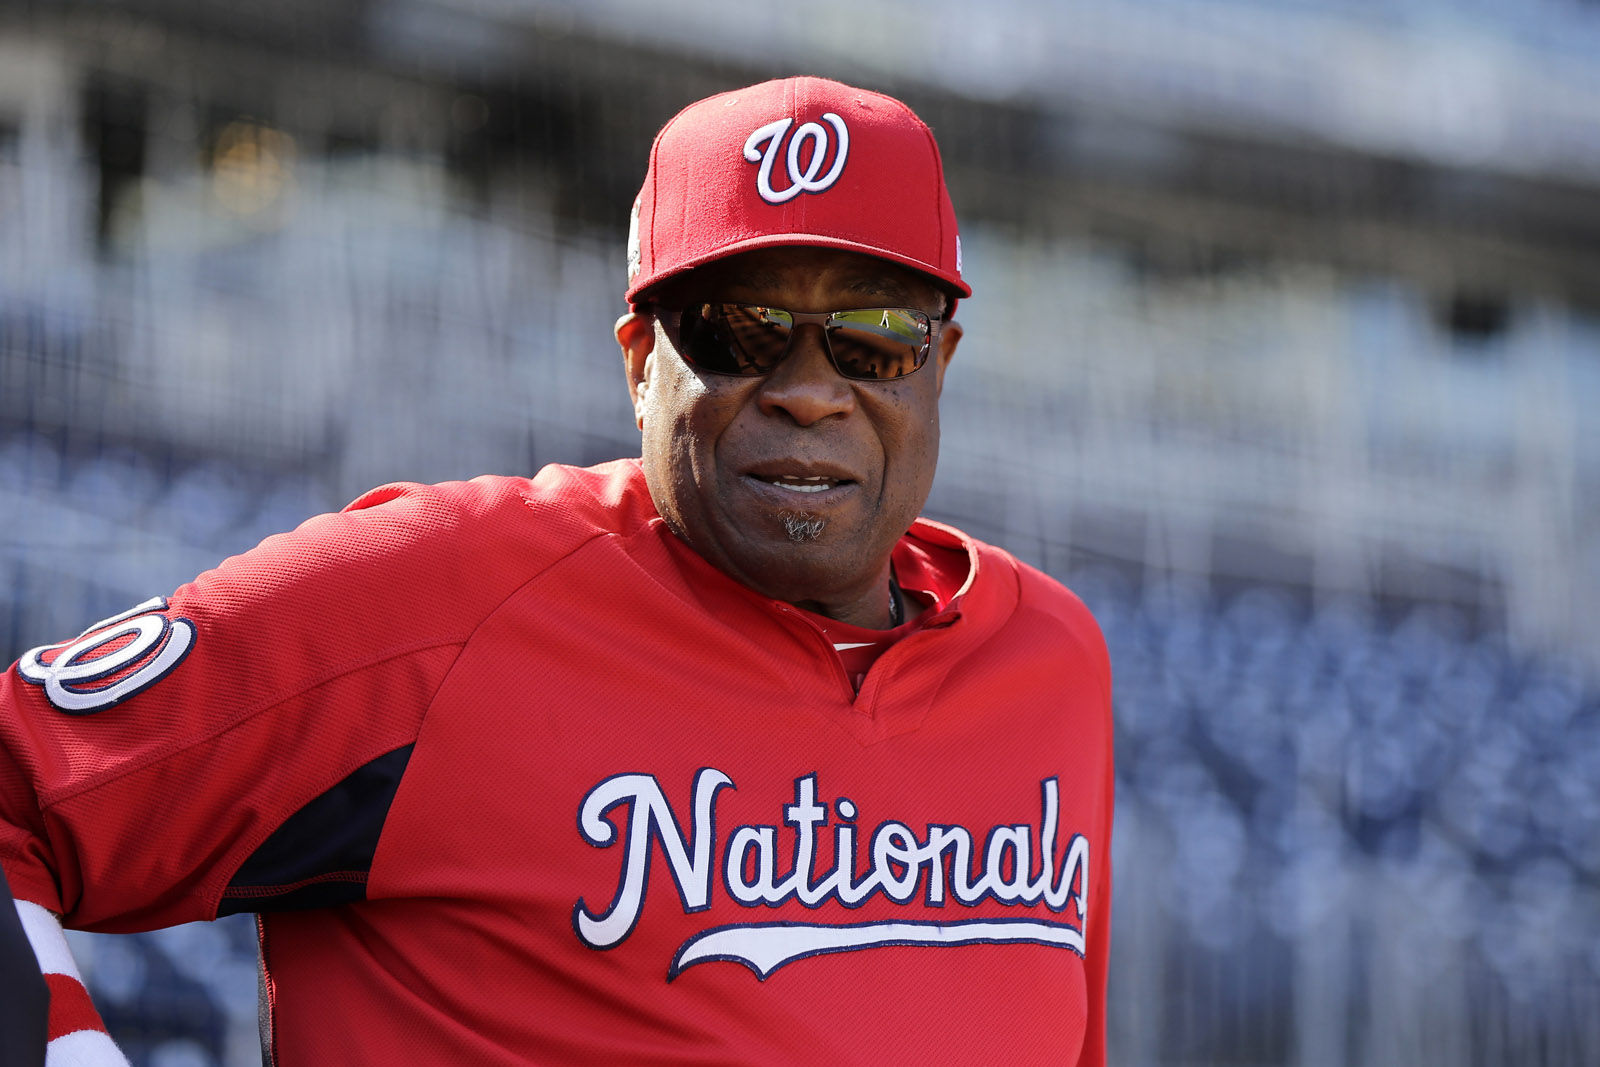 Washington Nationals manager Dusty Baker watches the team during baseball practice at Nationals Park, Wednesday, Oct. 4, 2017, in Washington. Game 1 of the National League Division Series against the Chicago Cubs is Friday. (AP Photo/Mark Tenally)